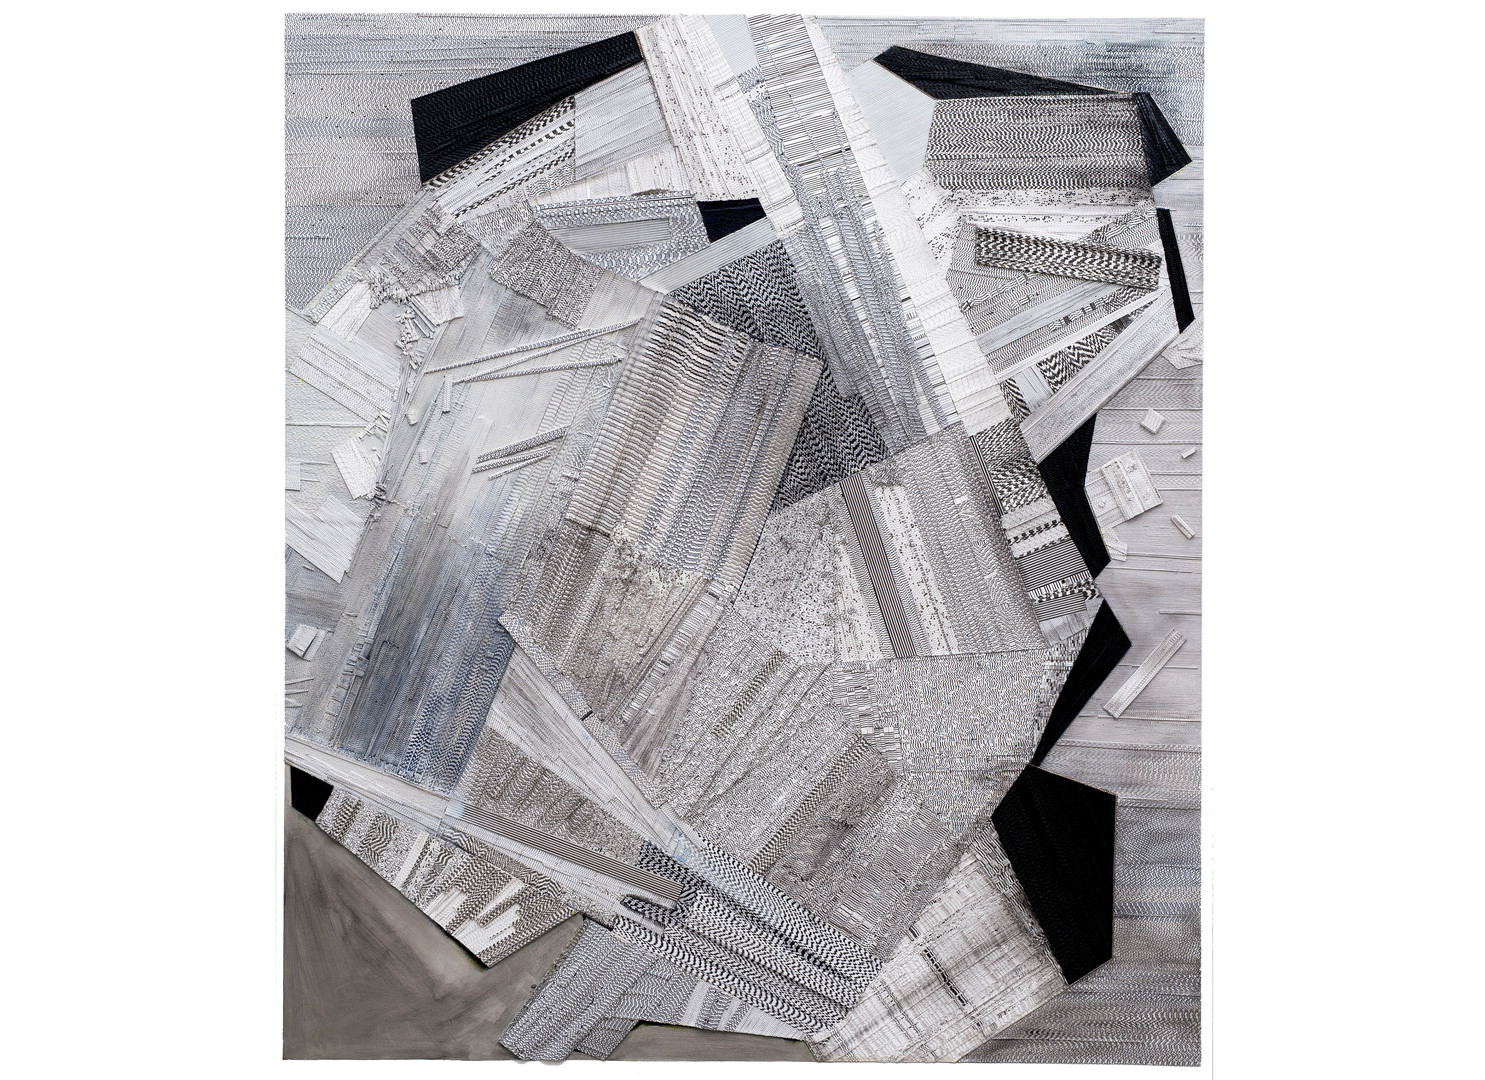 Galia Gluckman   Order   2019   Construction with Canvas Textured Paper, Acrylic and Bonding Tape on Board   185 x 155 cm